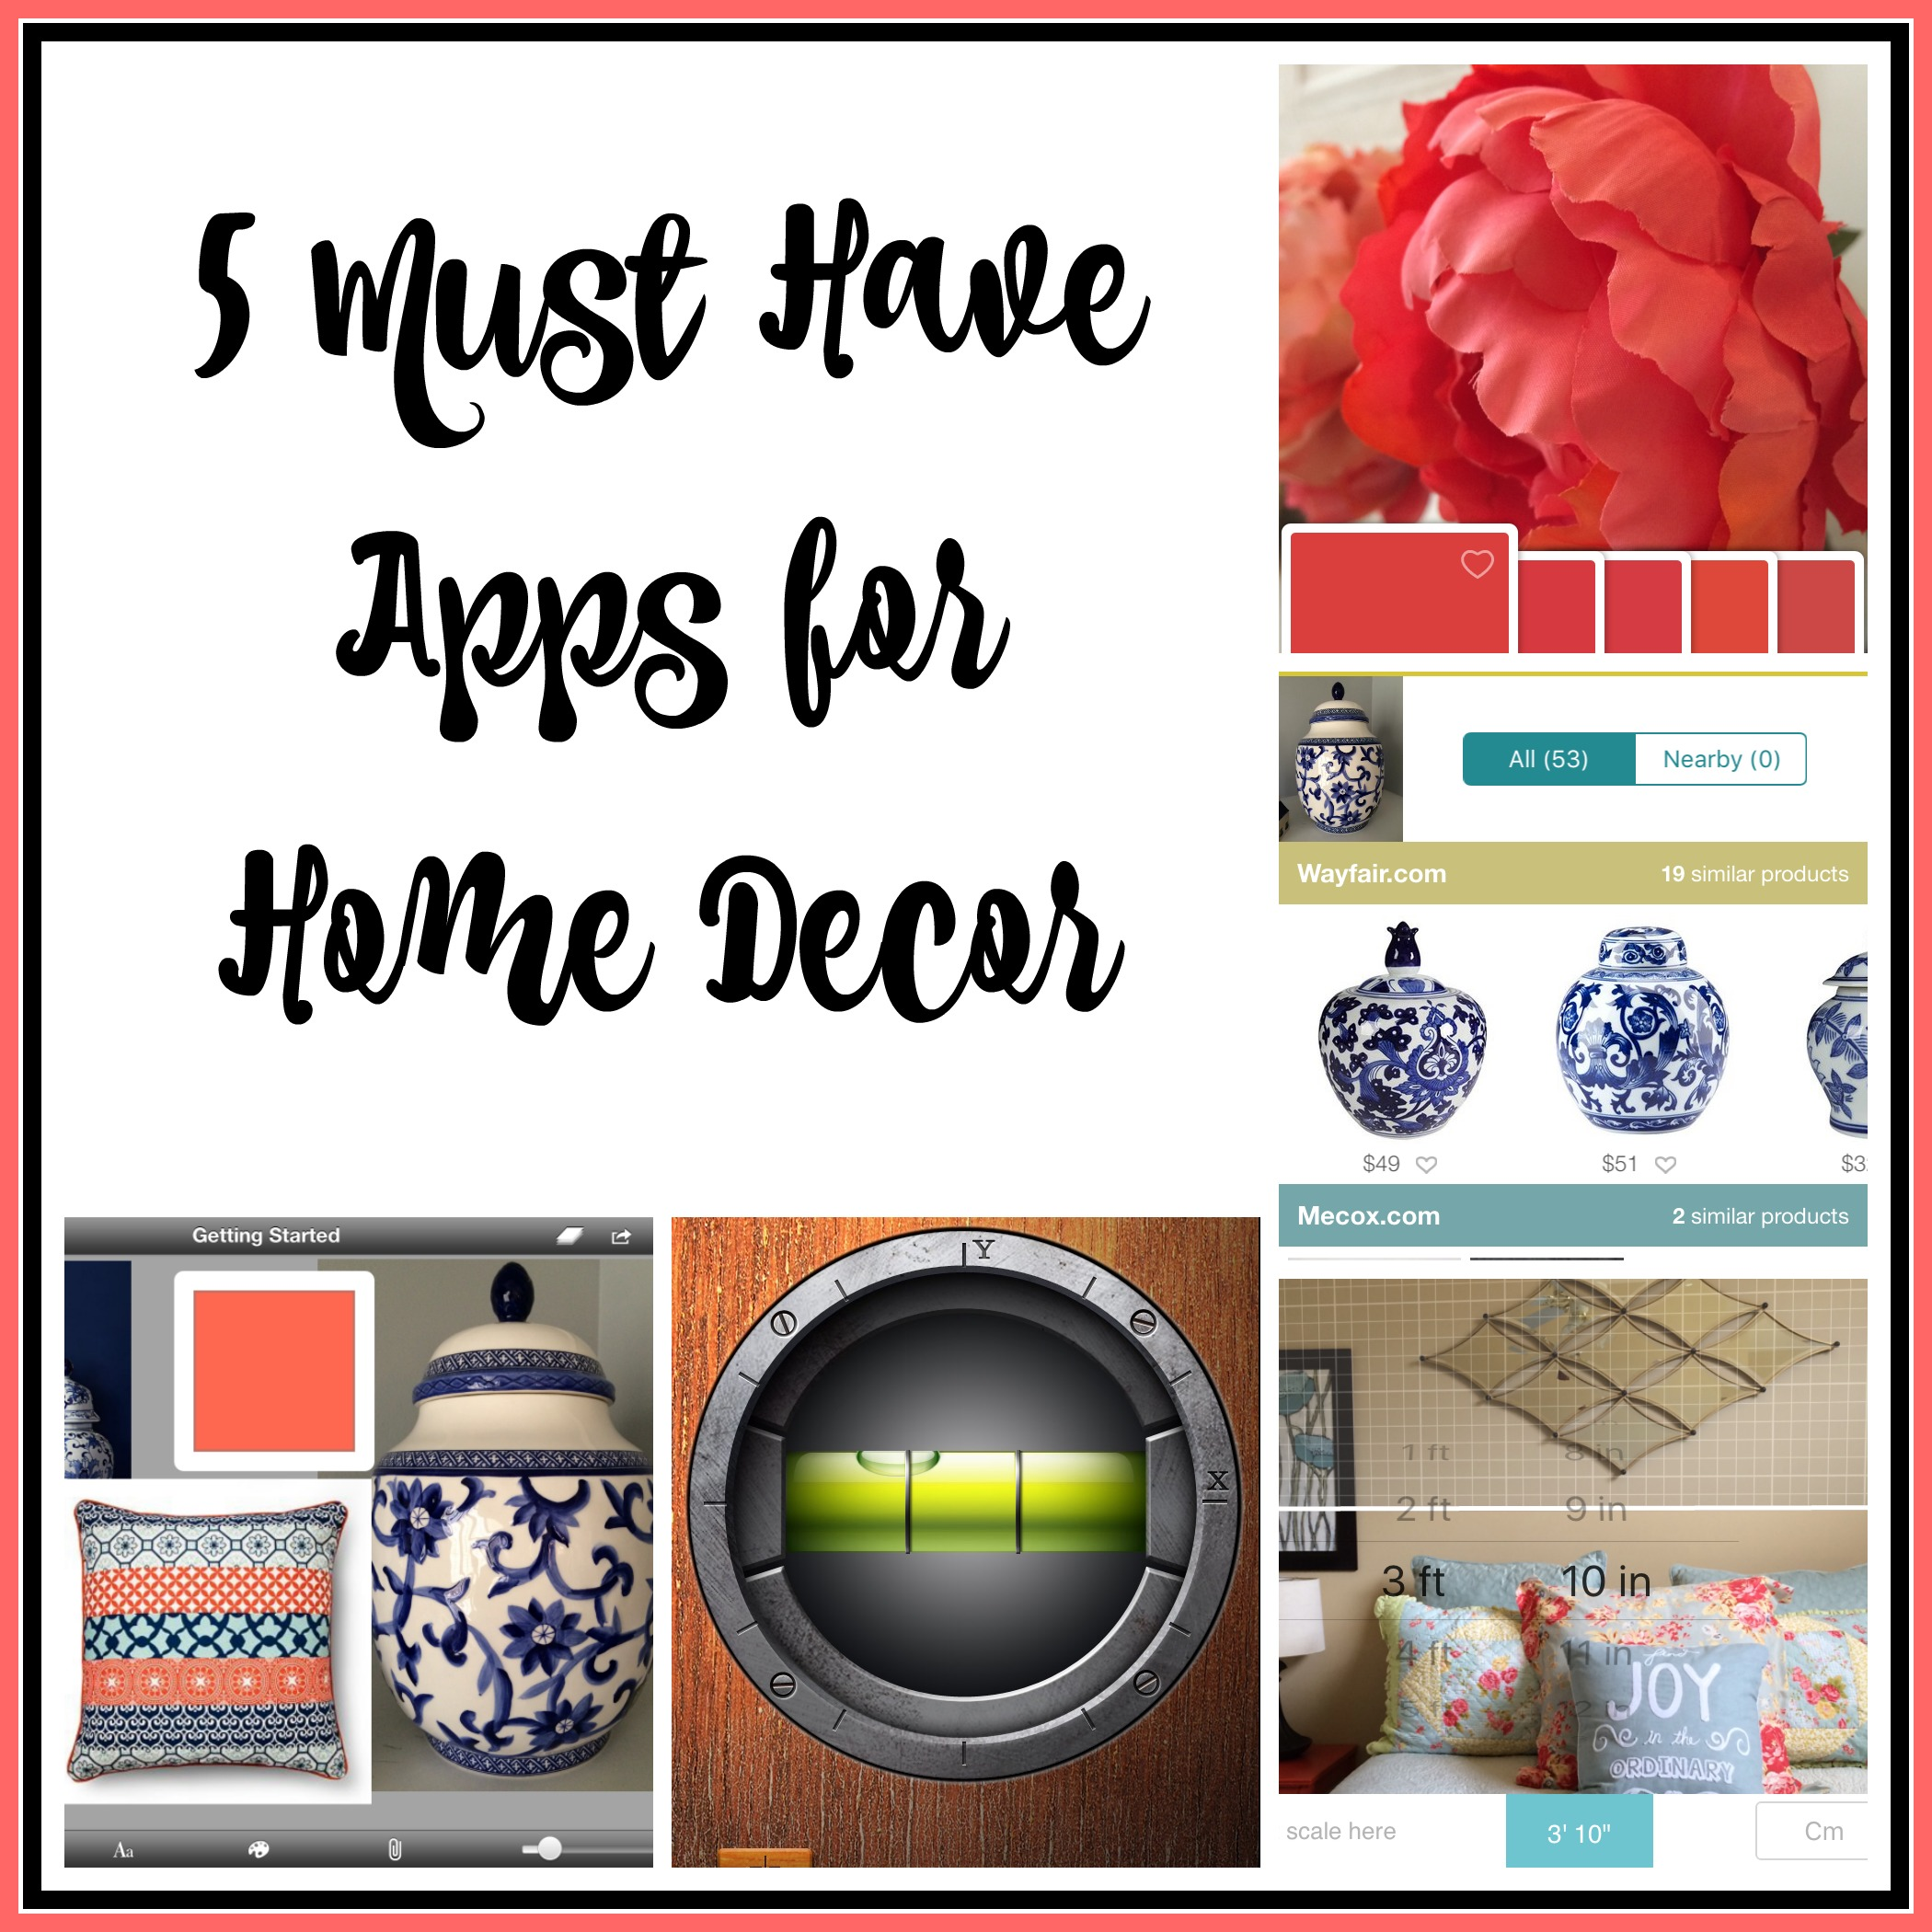 Home Decor Apps: 5 Must Have Apps For Home Decor